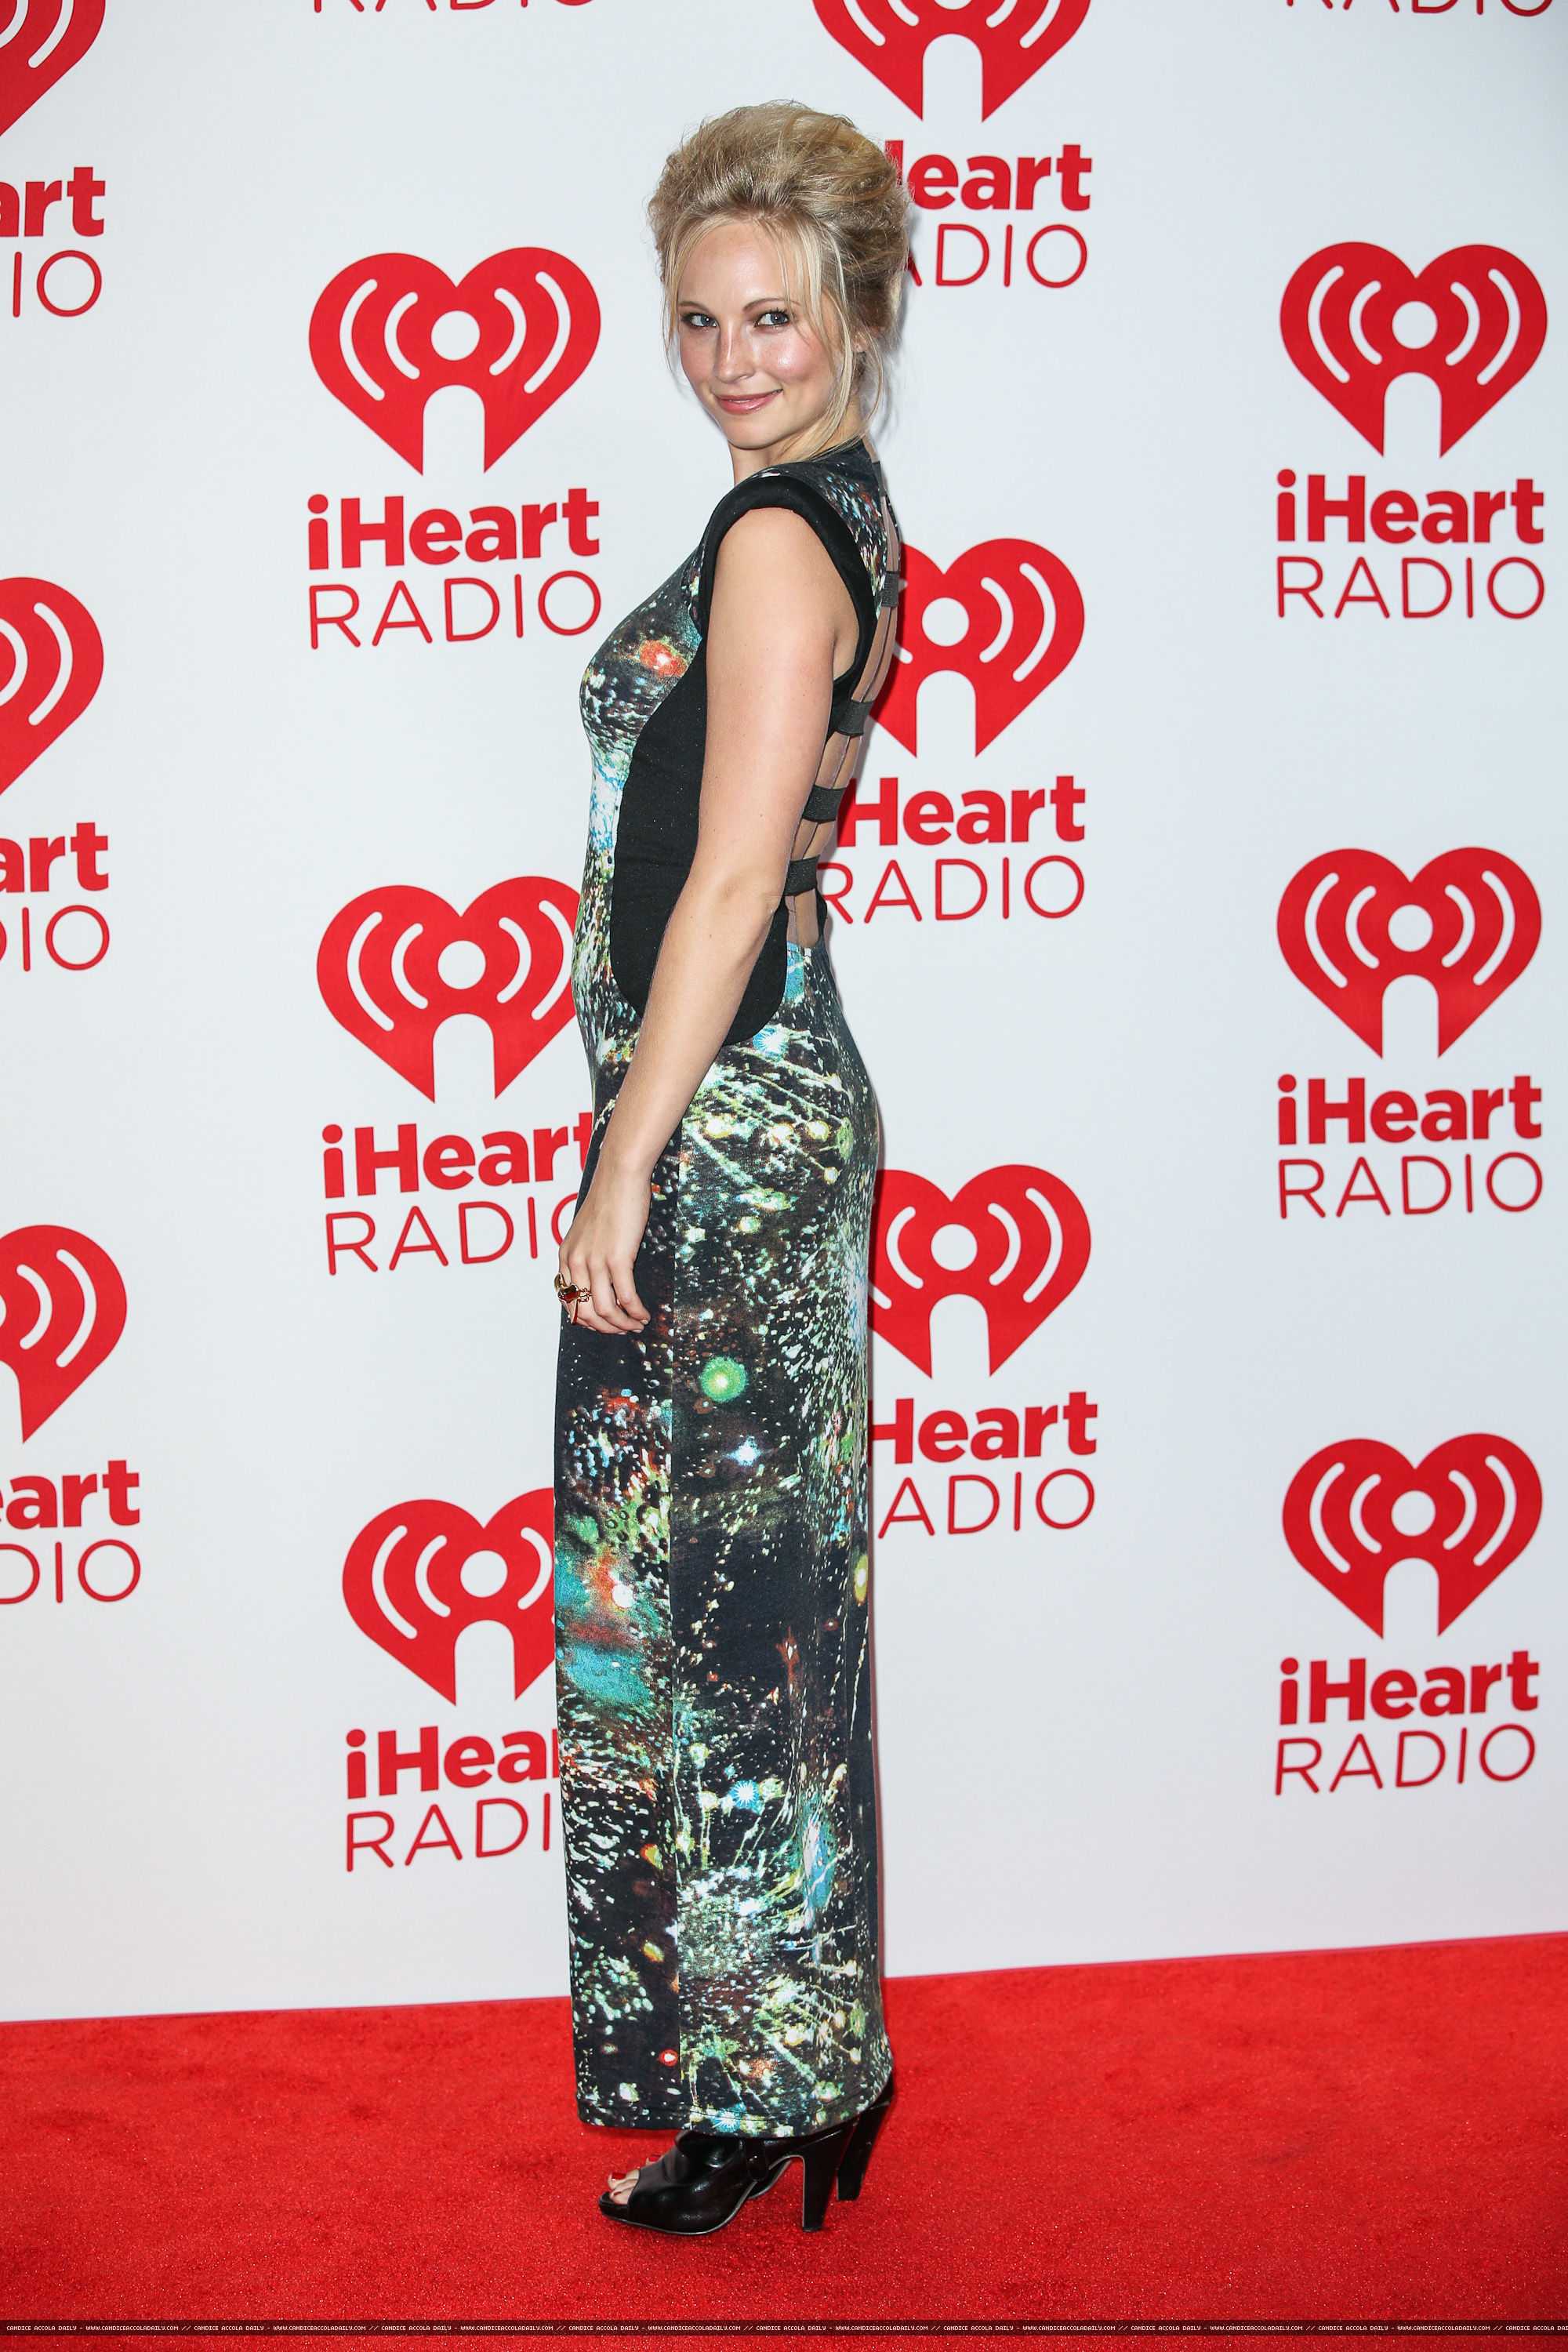 HQ: Candice at the iHeartRadio festival দিন 2 - Press Room. {22/09/12}.